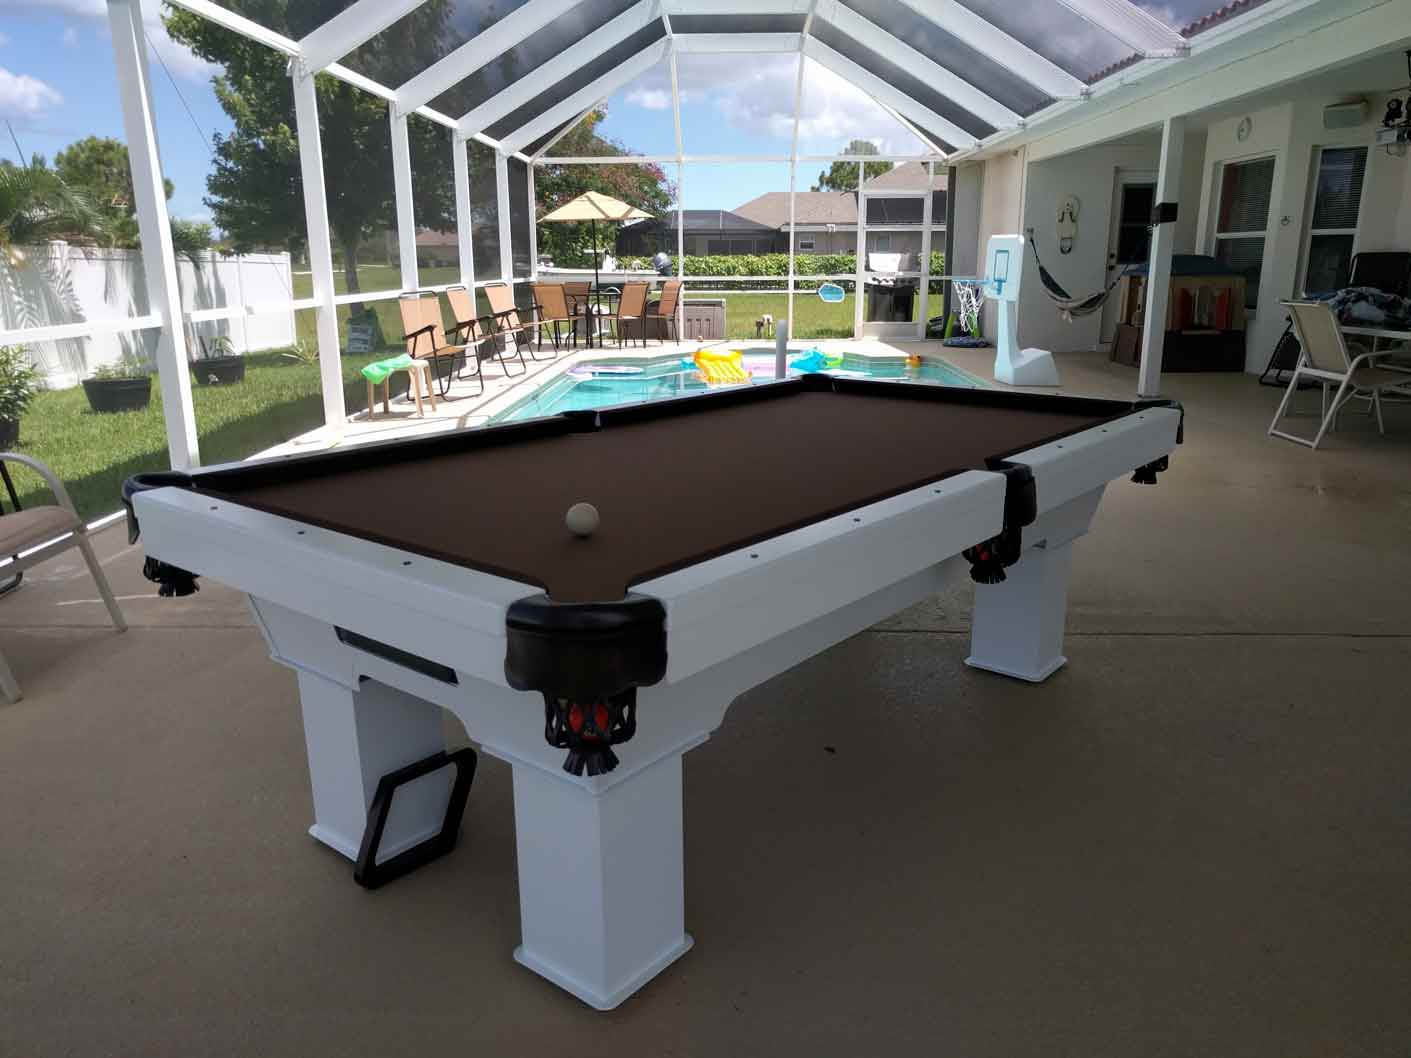 Brown and white Caesar outdoor pool table sitting poolside in a Southwest Florida Home